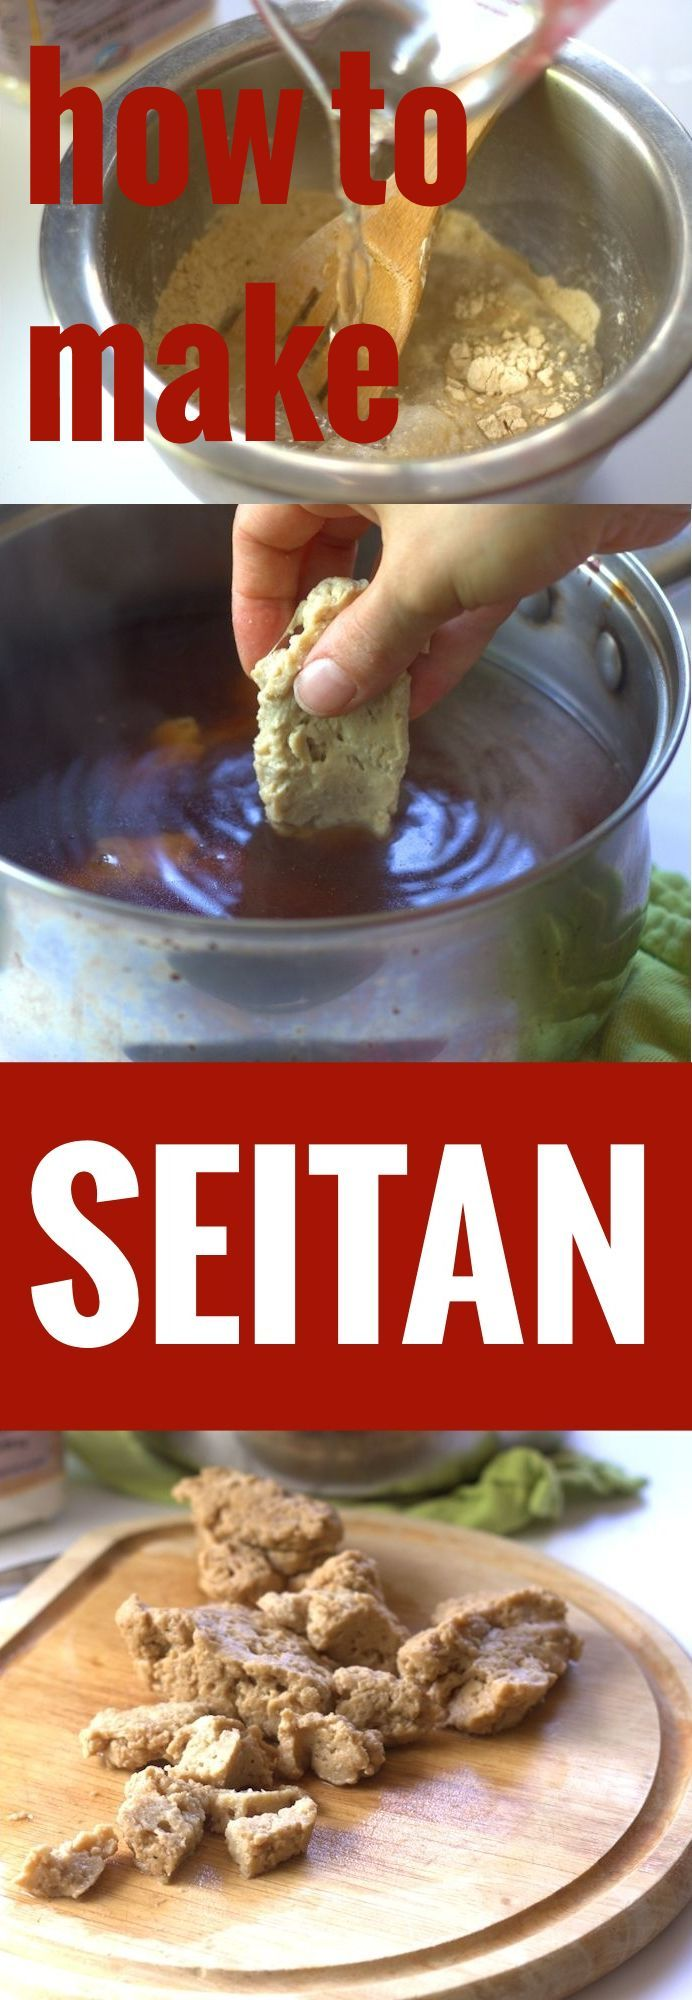 How to Make Seitan - Connoisseurus Veg